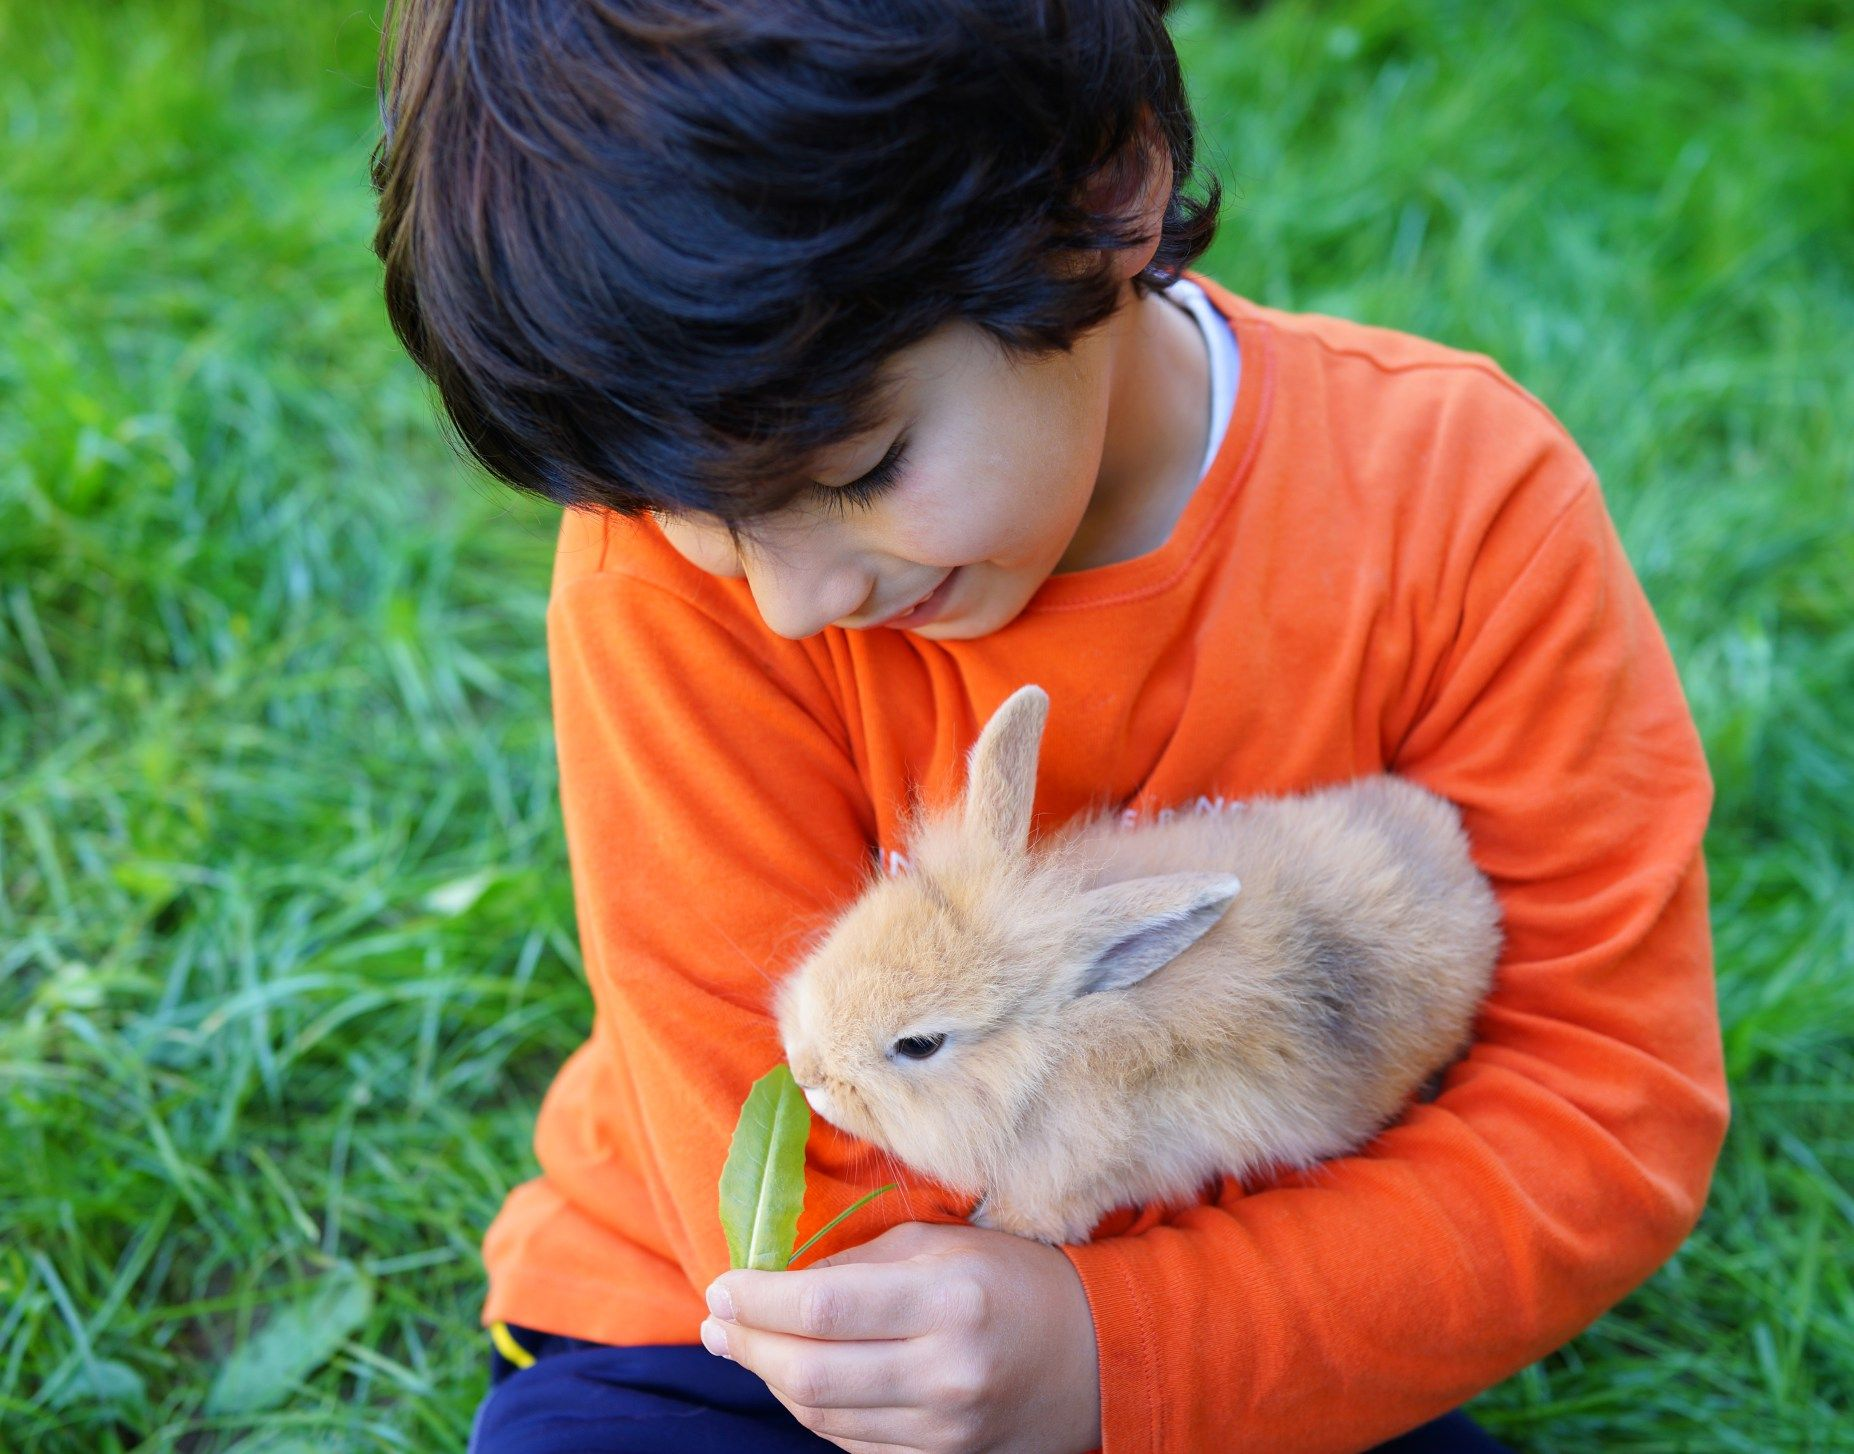 Easy Treatments for Ear Mites in Rabbits Raising rabbits